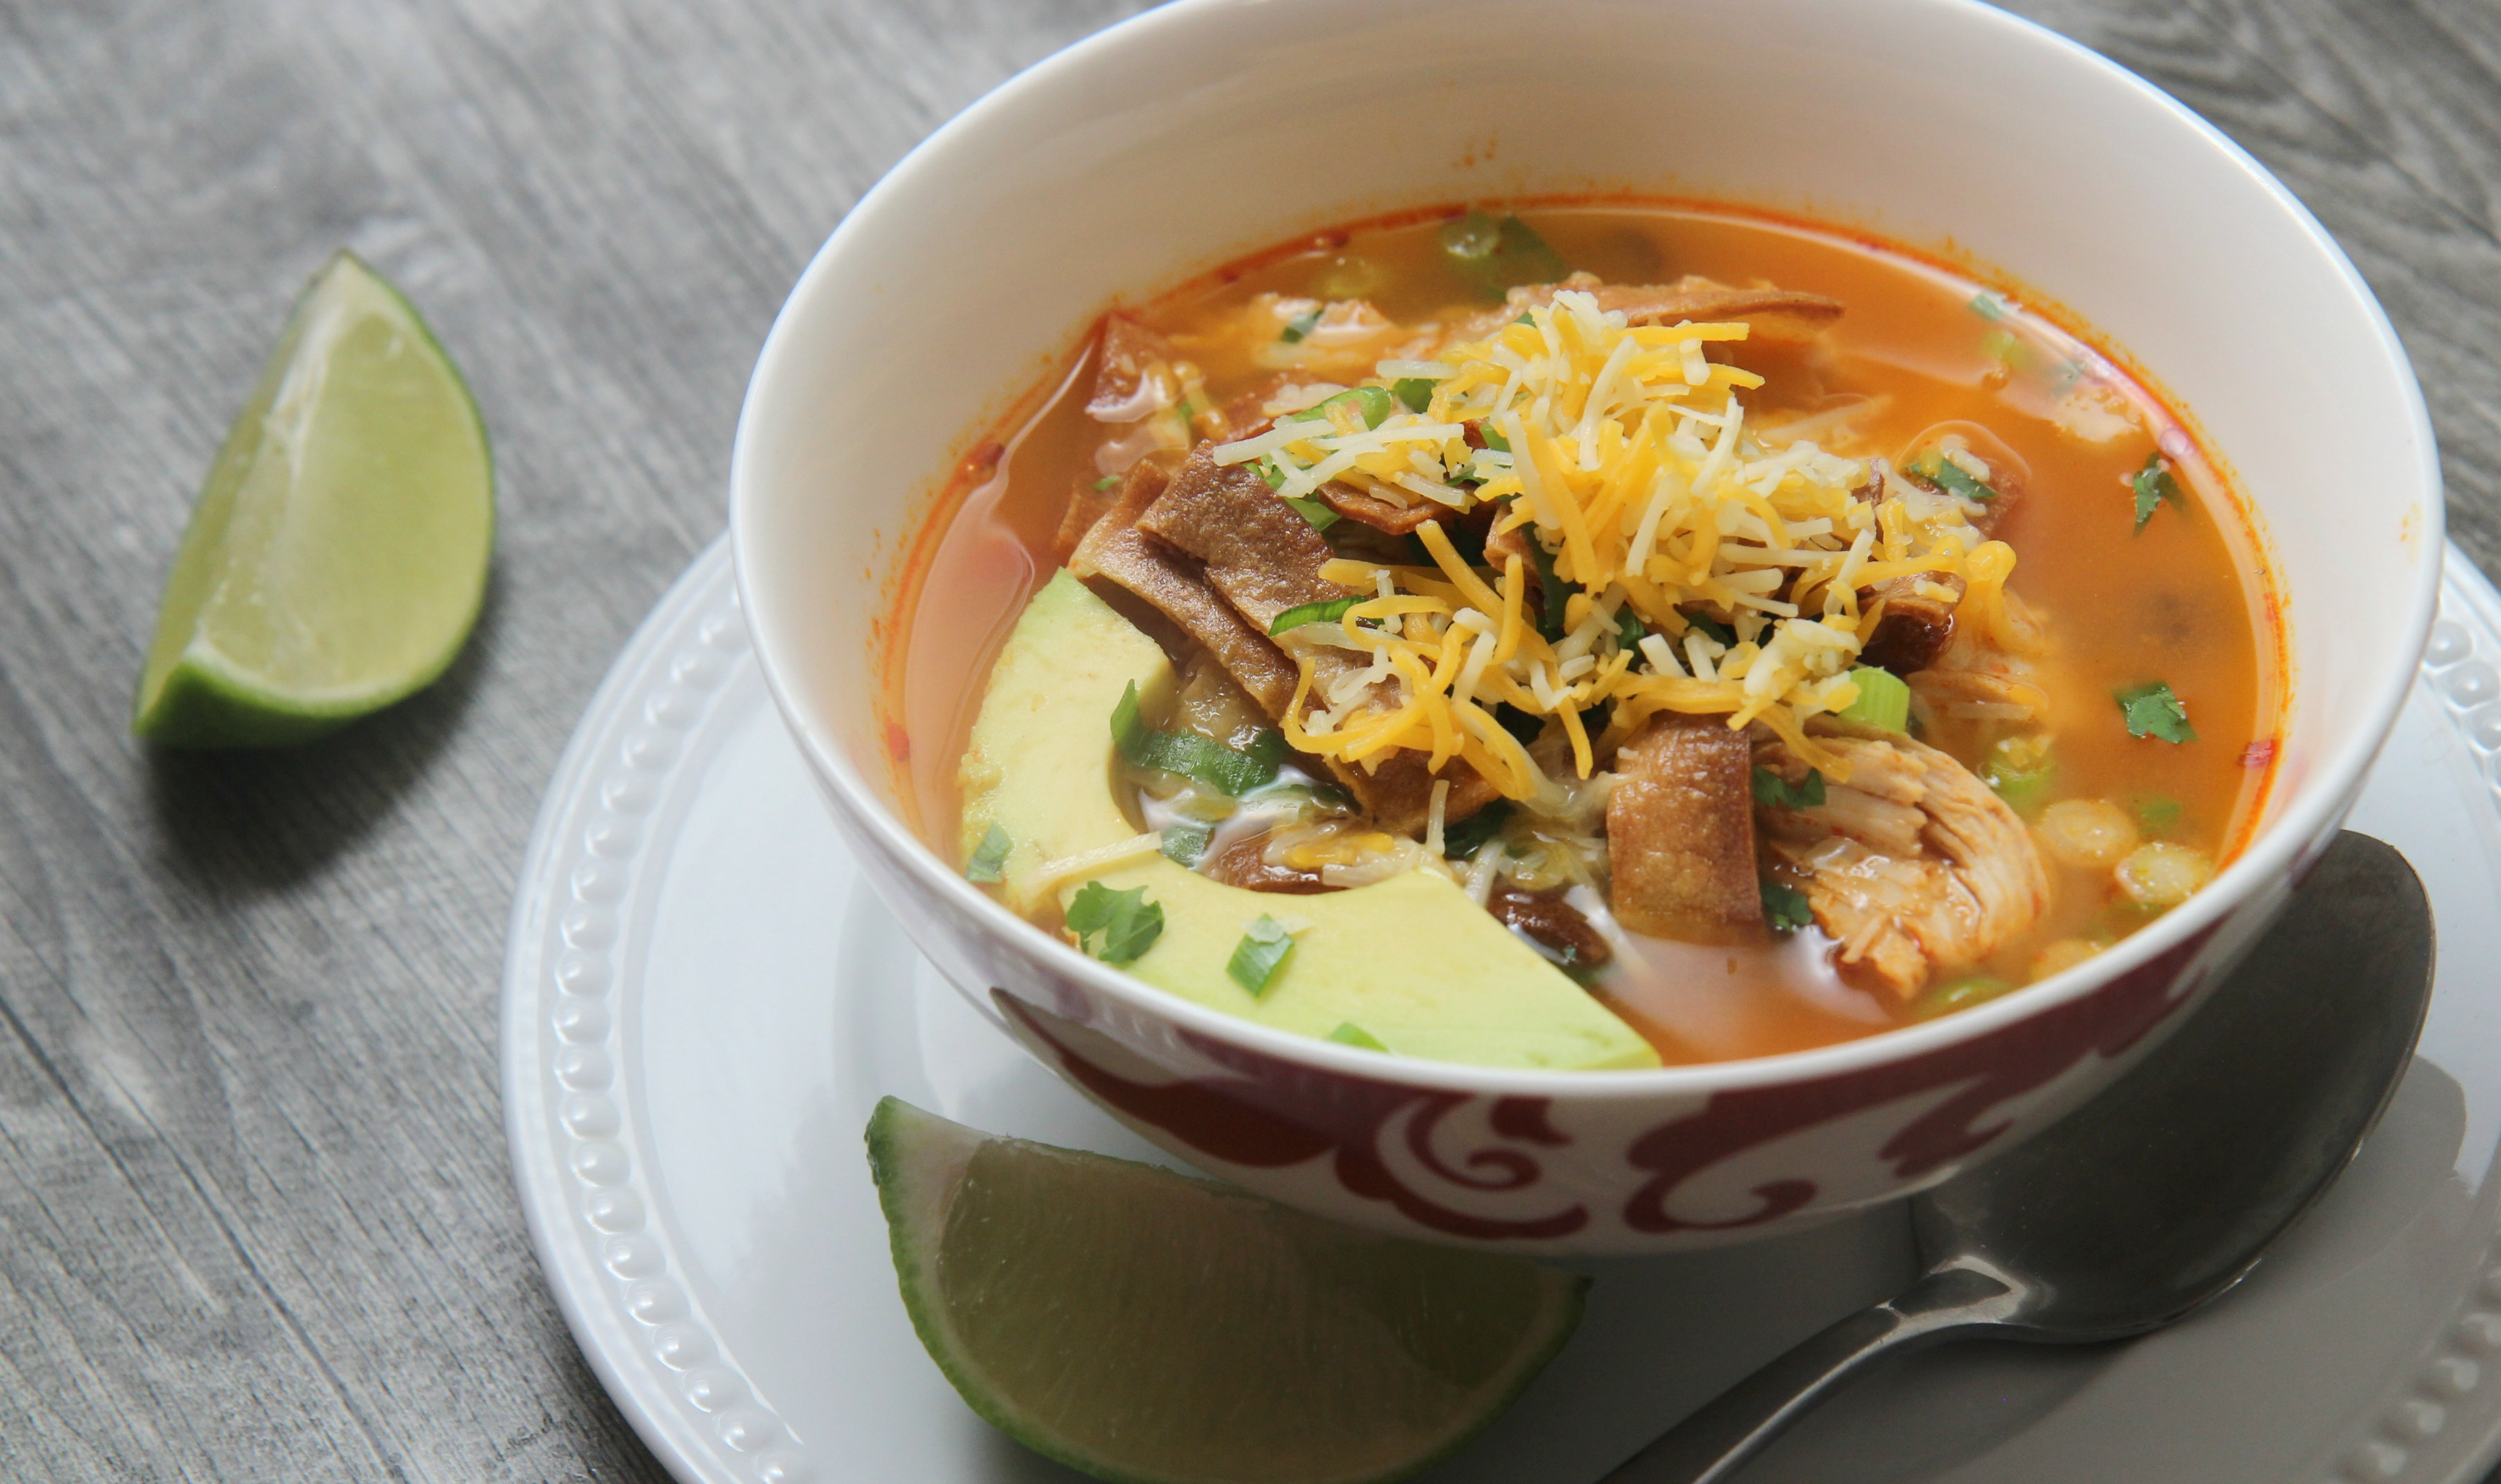 A warm bowl of this spicy chicken tortilla soup topped with cheddar cheese and avocado is a perfect cold-day remedy